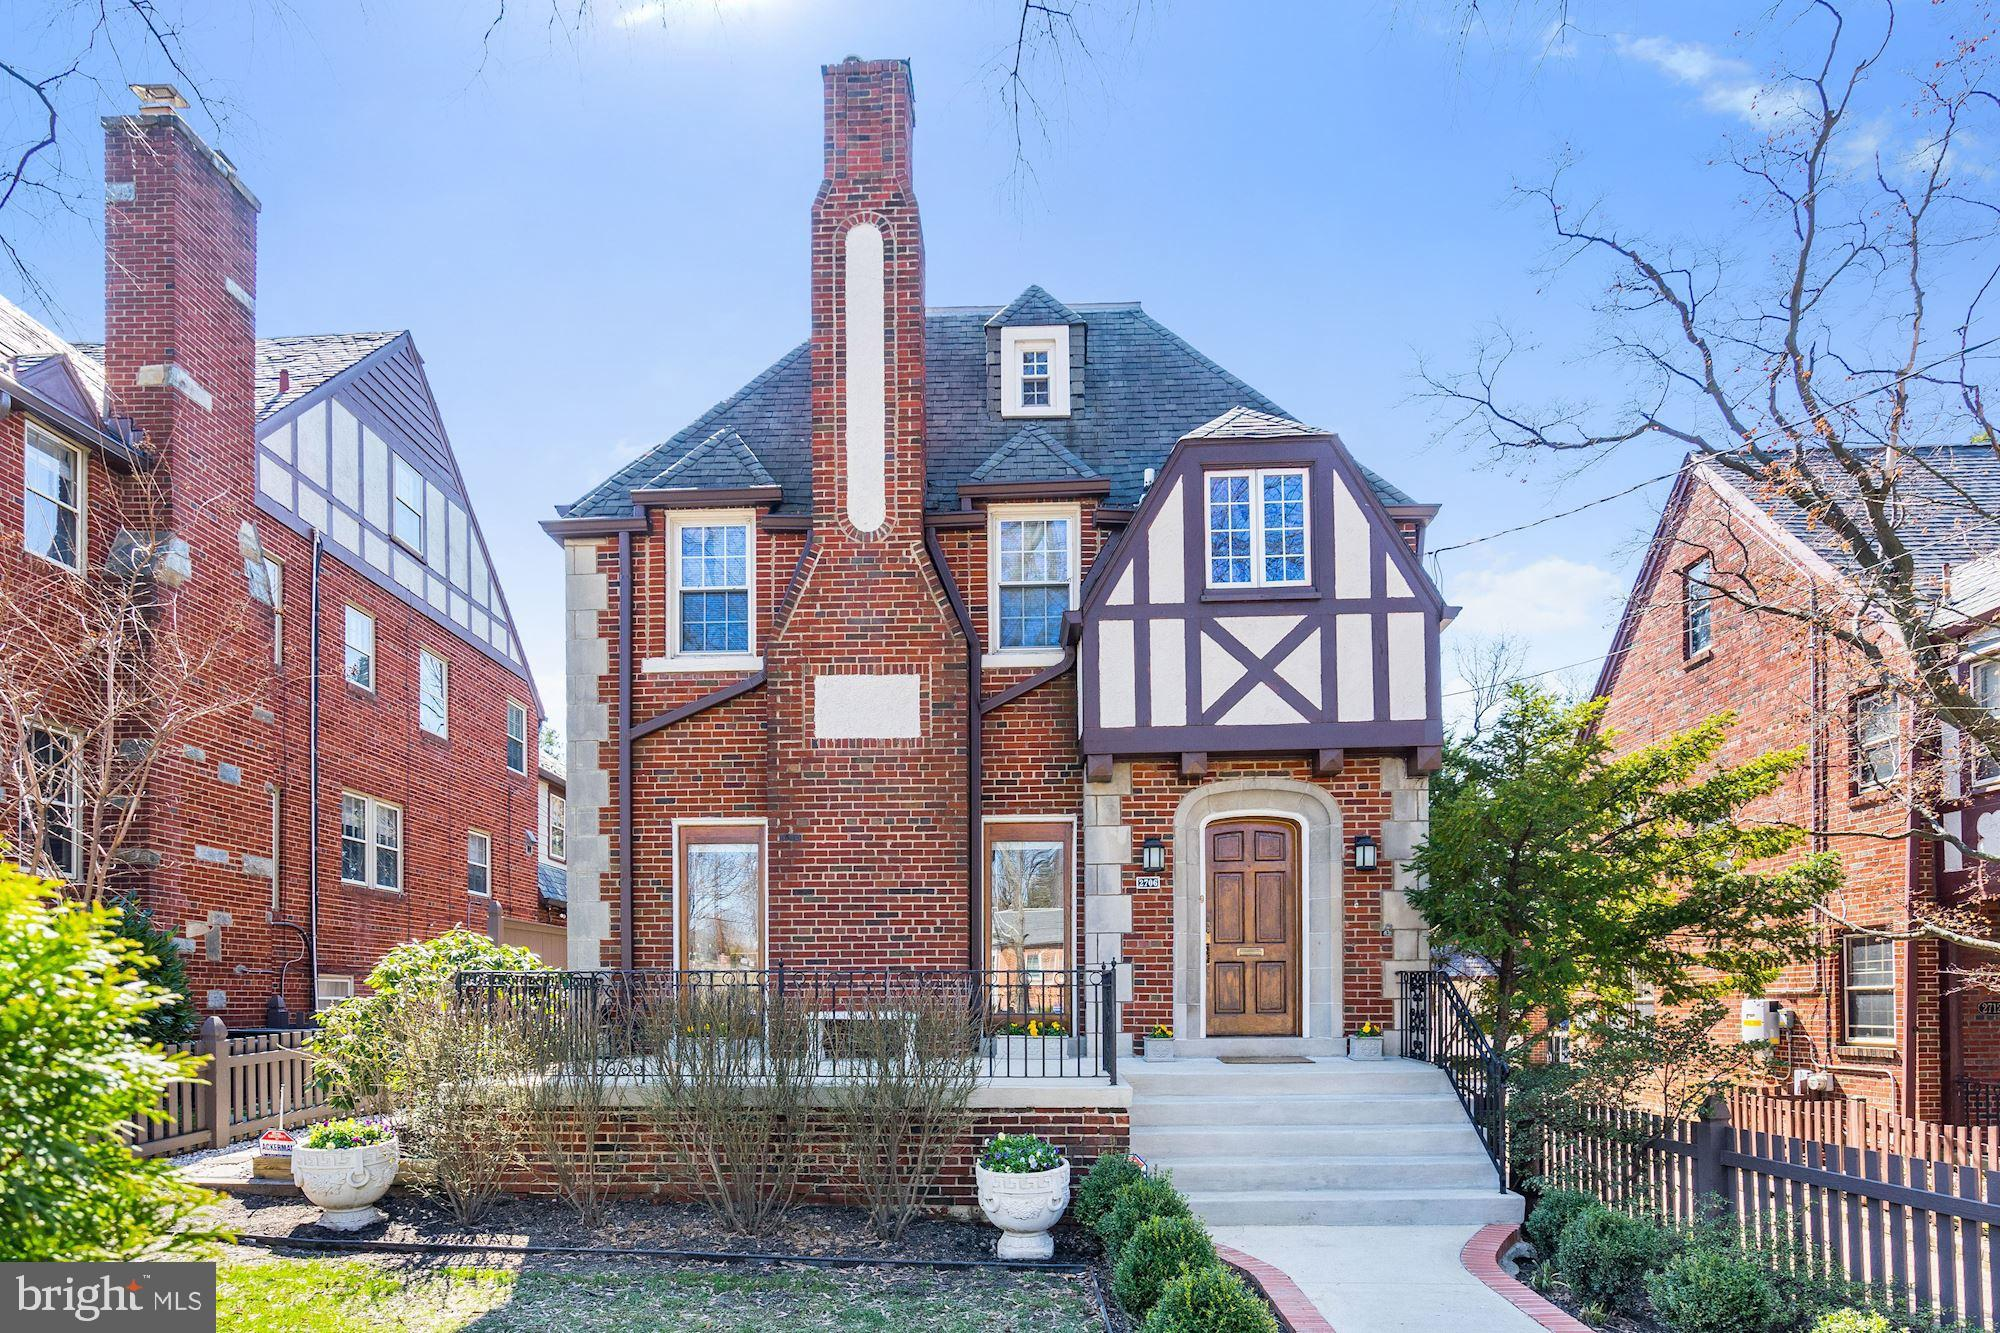 Open Saturday, 3/23 and Sunday, 3/24 from 1pm to 4pm. From the countless architectural details to it